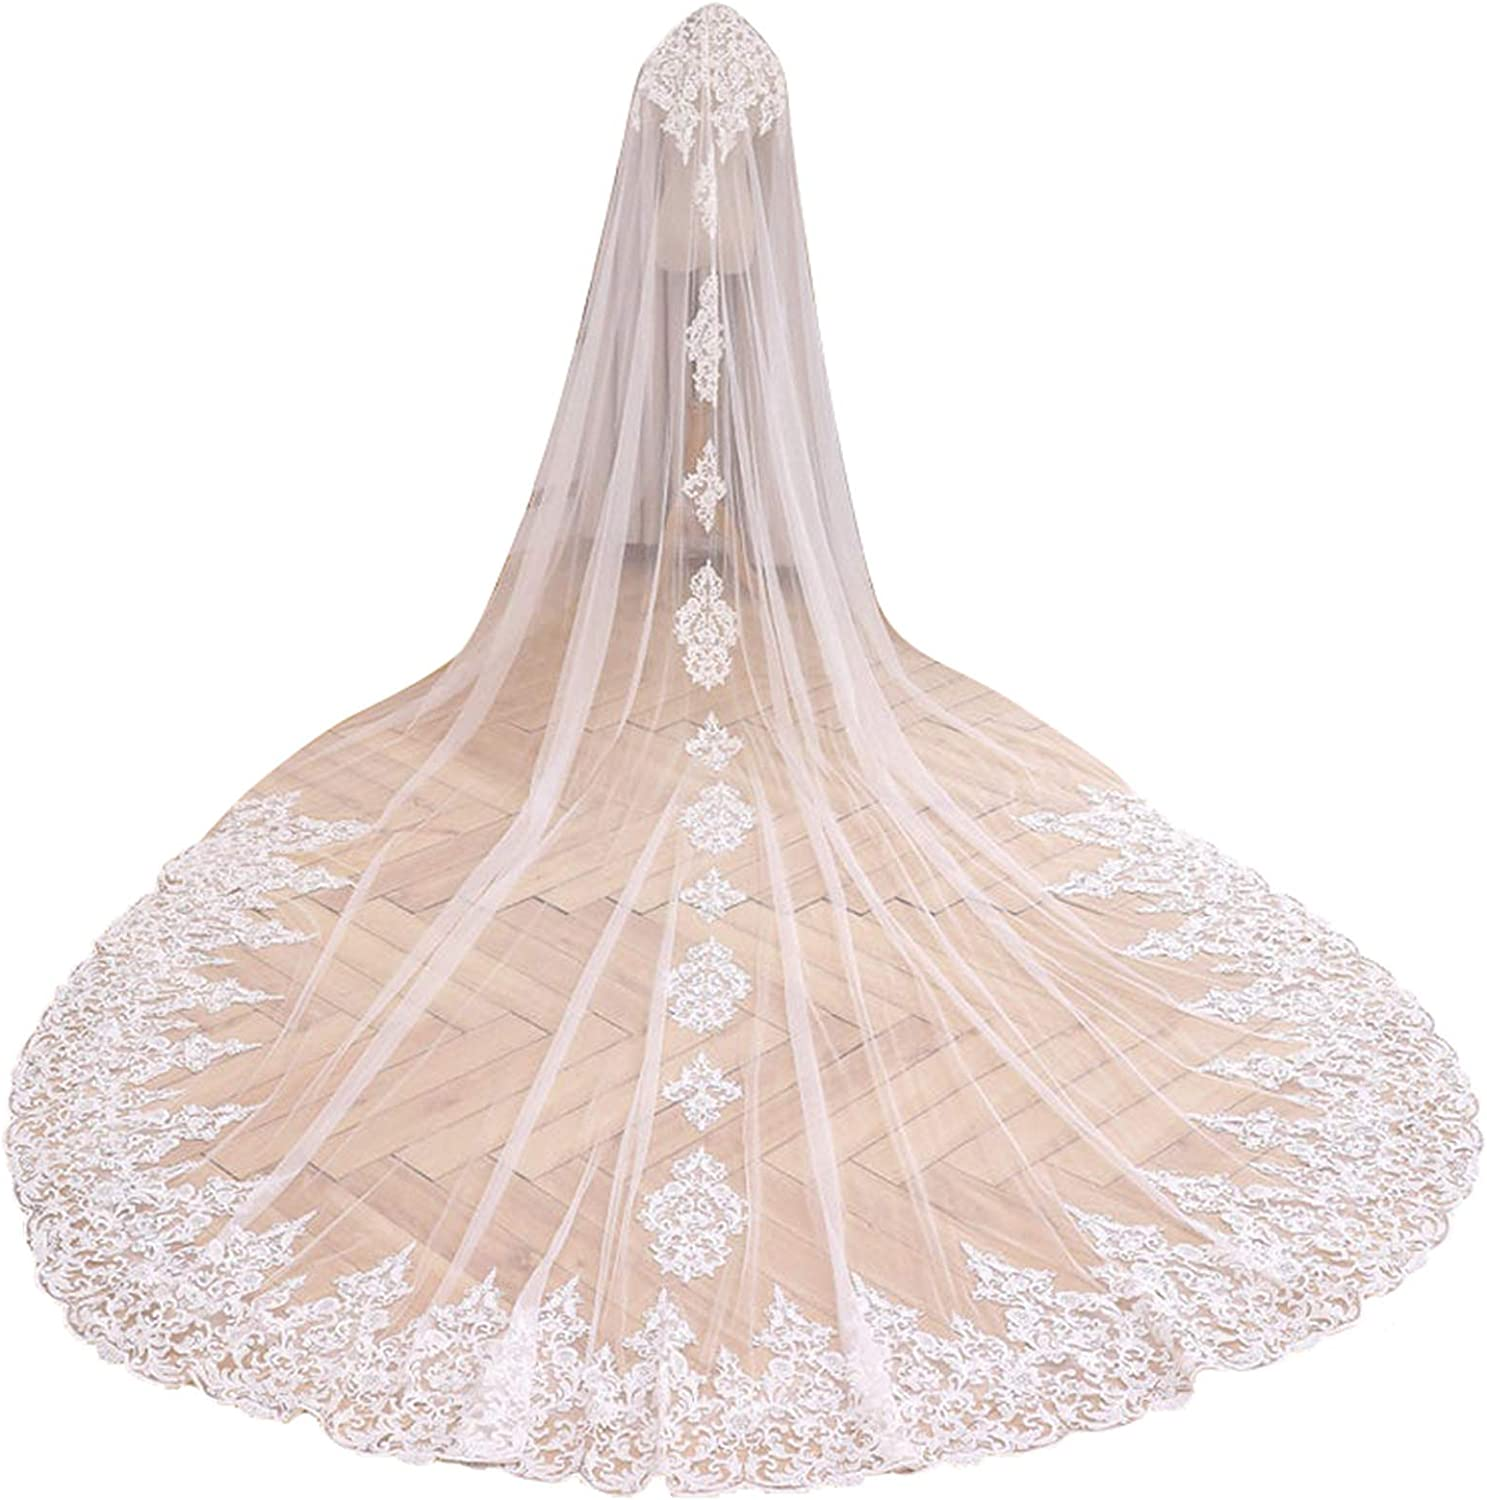 Wedding Veils for Brides Cathedral Length 1 Tier Floral Lace Edge Appliques Ivory White with Comb